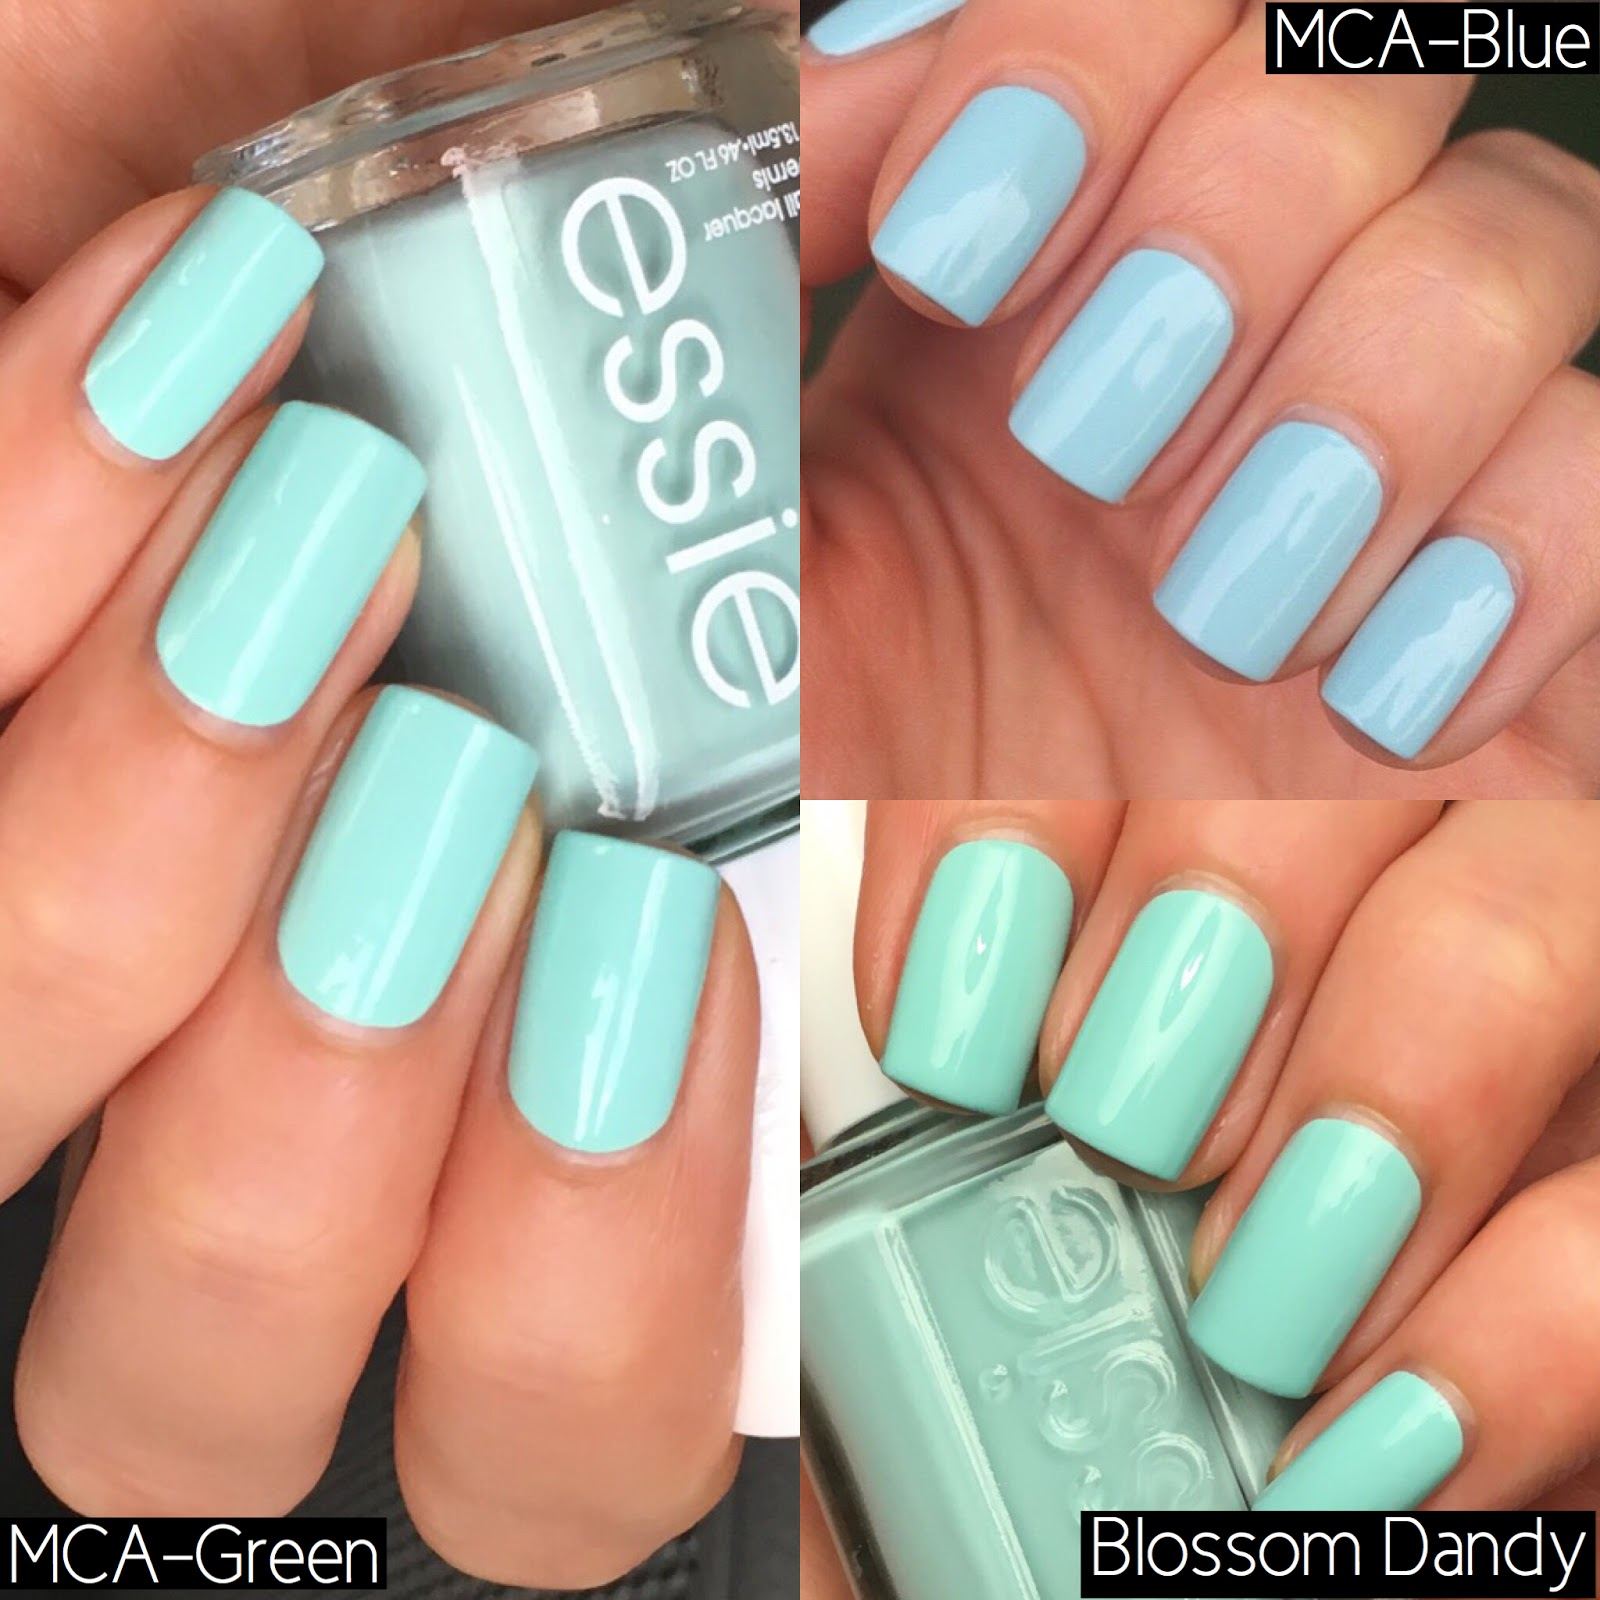 lovefreshpaint: Essie Mint Candy Apple vs. Blossom Dandy